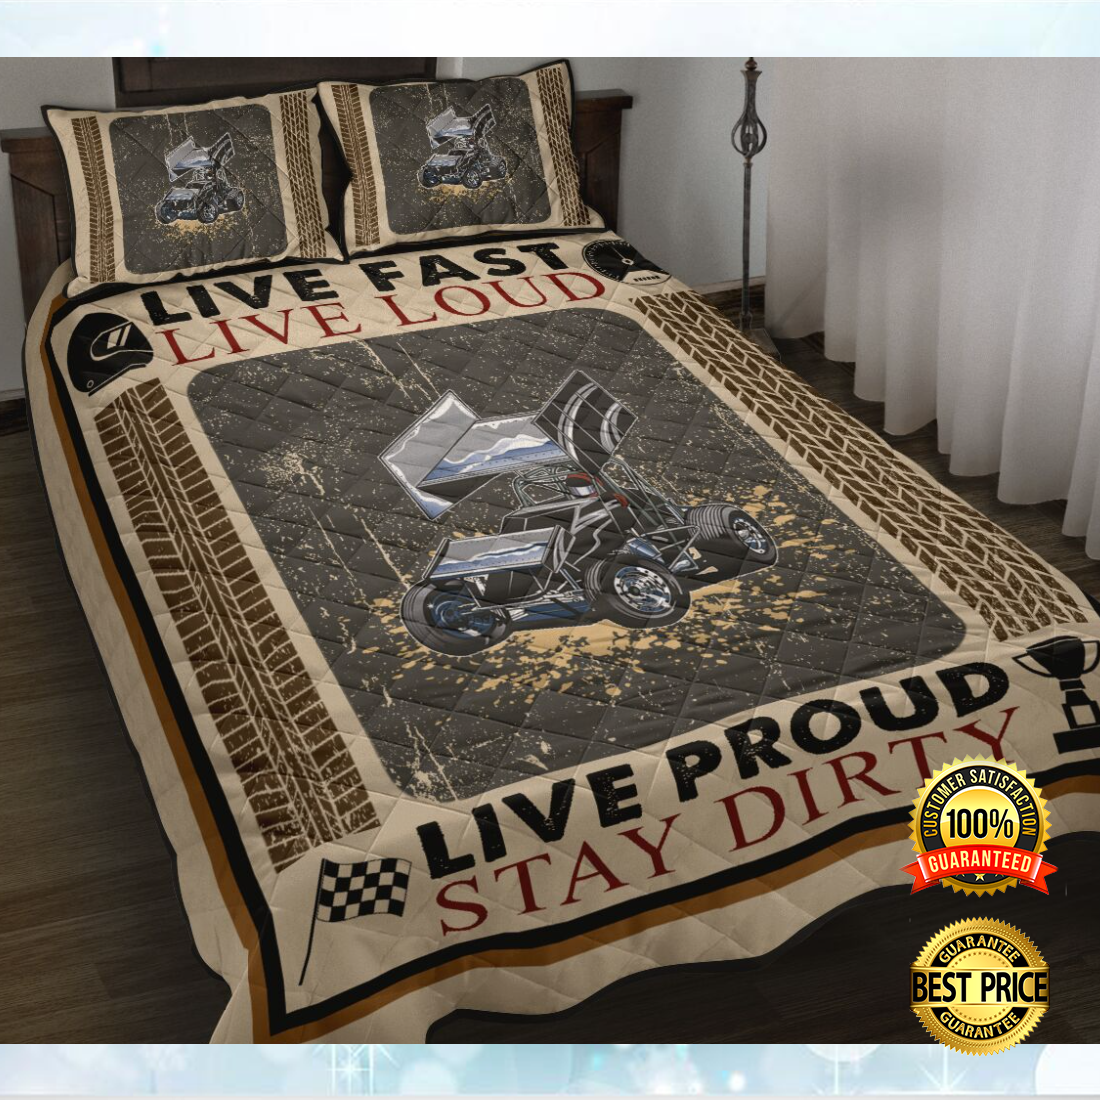 Live fast live loud live proud stay dirty bedding set 4